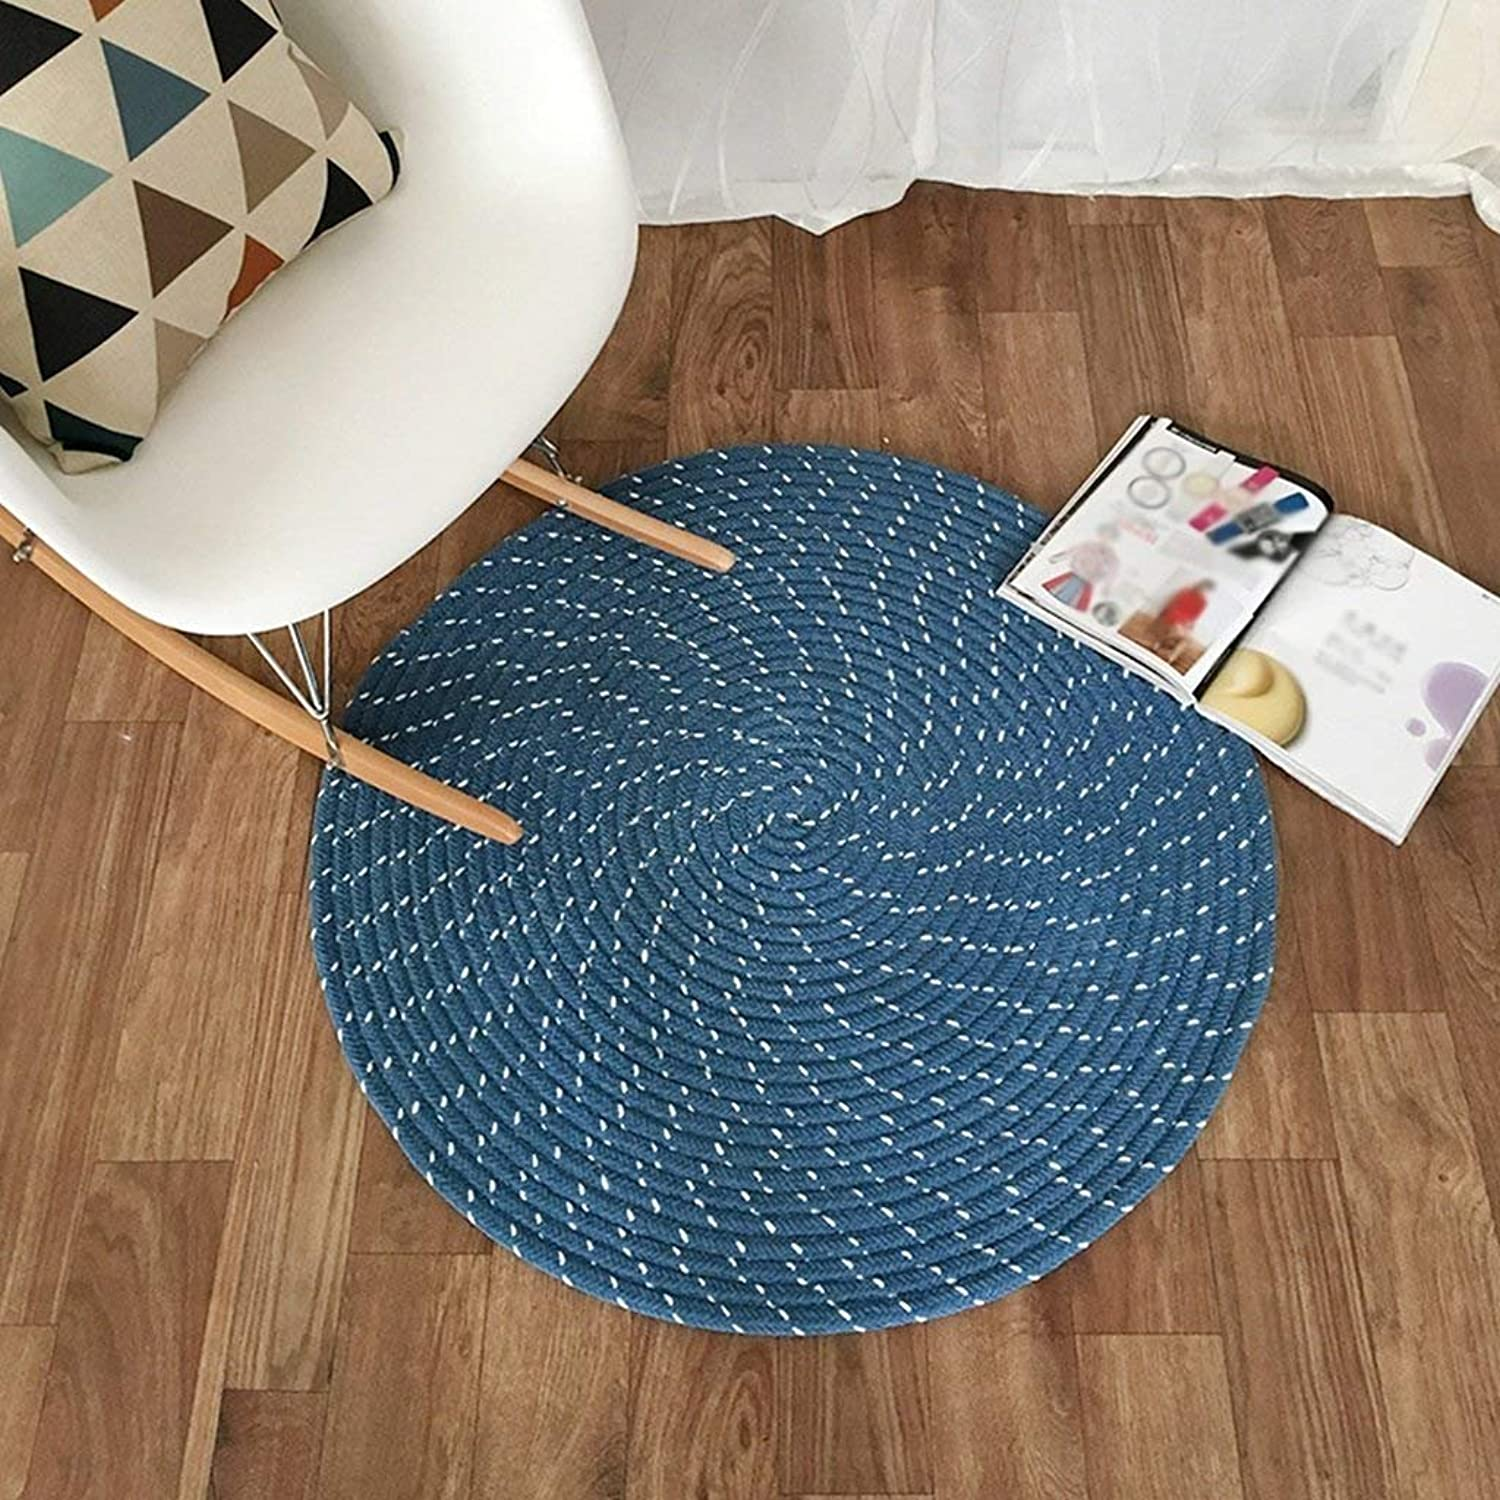 Carpet, Weave Round Computer Chair Cushion Hanging Basket pad Living Room Bedroom Study Home Diameter 40cm Diameter 150cm Soft and Comfortable (color   Royal bluee, Size   Diameter80cm)